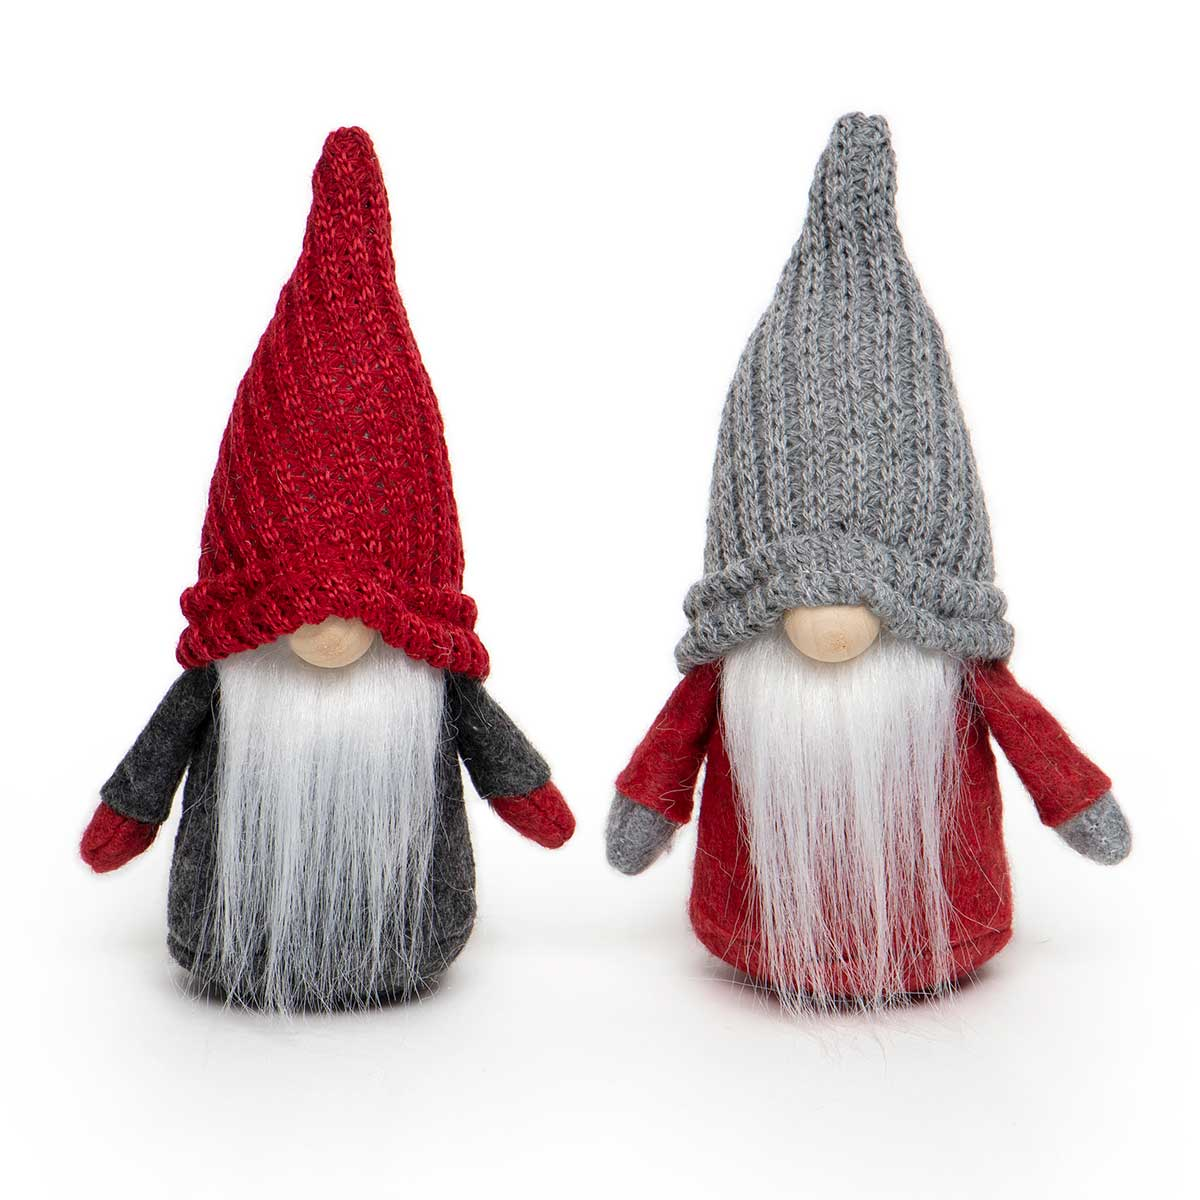 RED/GREY GNOME WITH KNIT HAT, WOOD